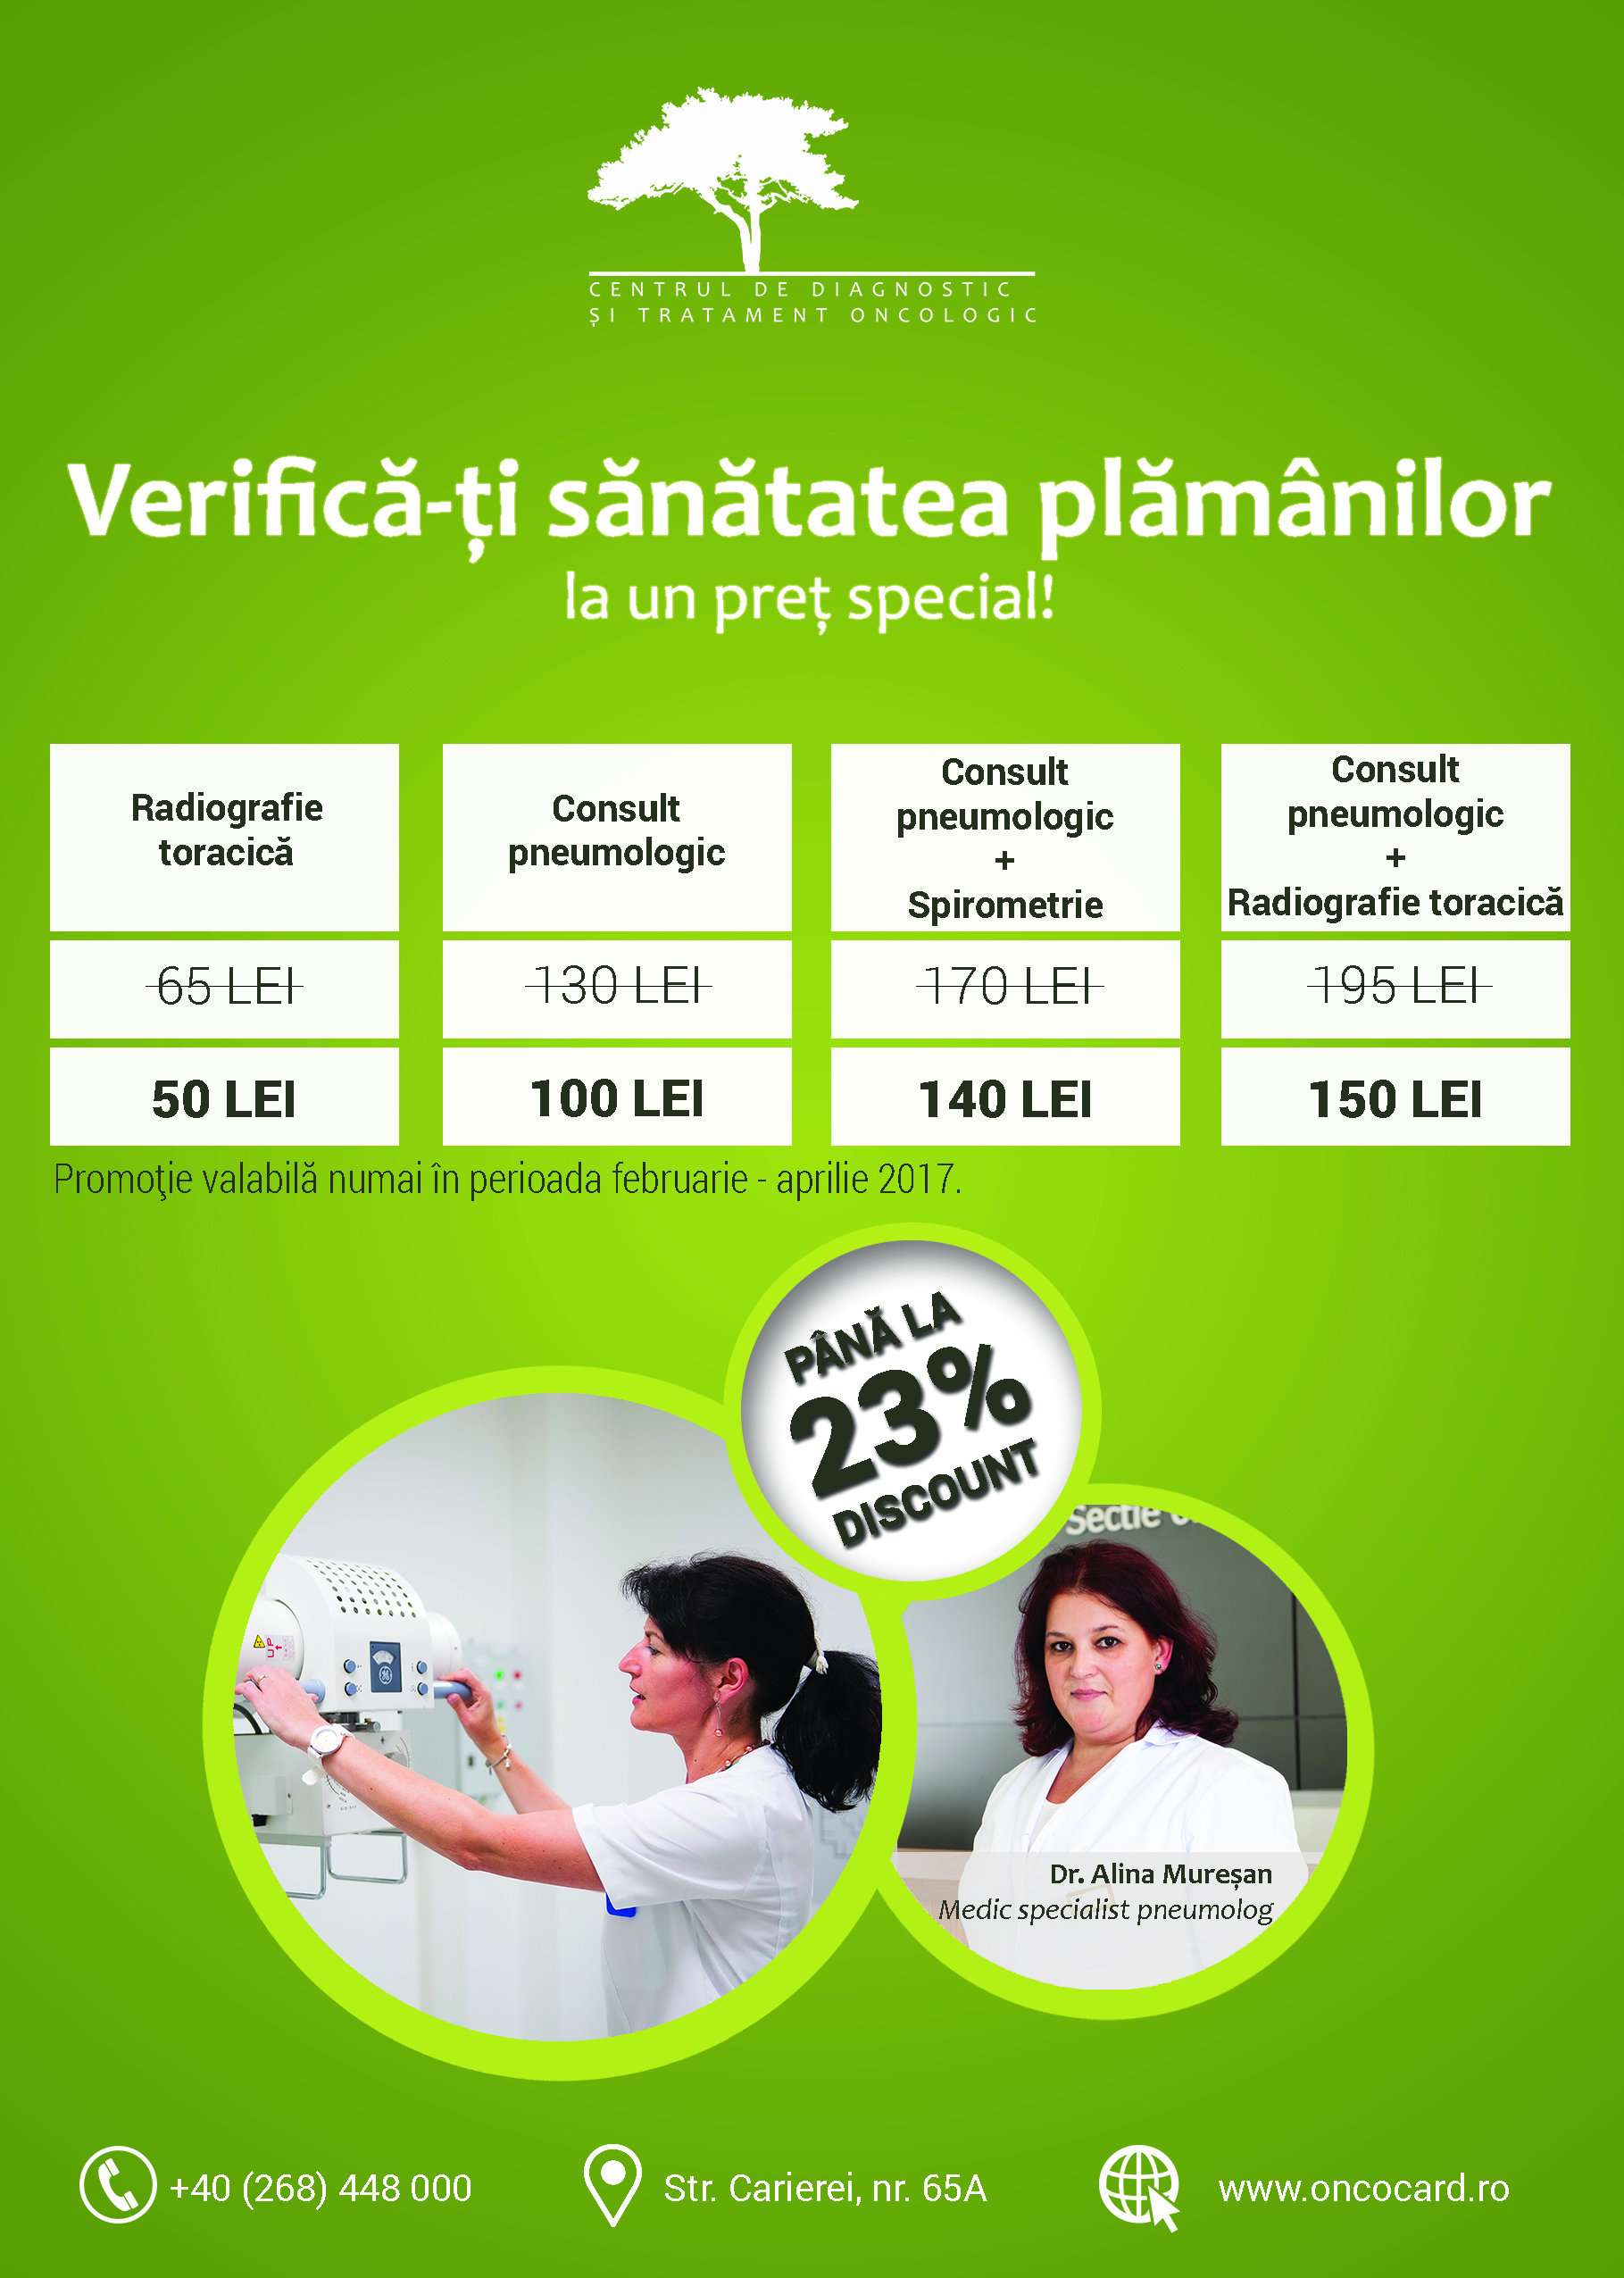 http://test.oncocard.ro/wp-content/uploads/2017/01/5.jpg